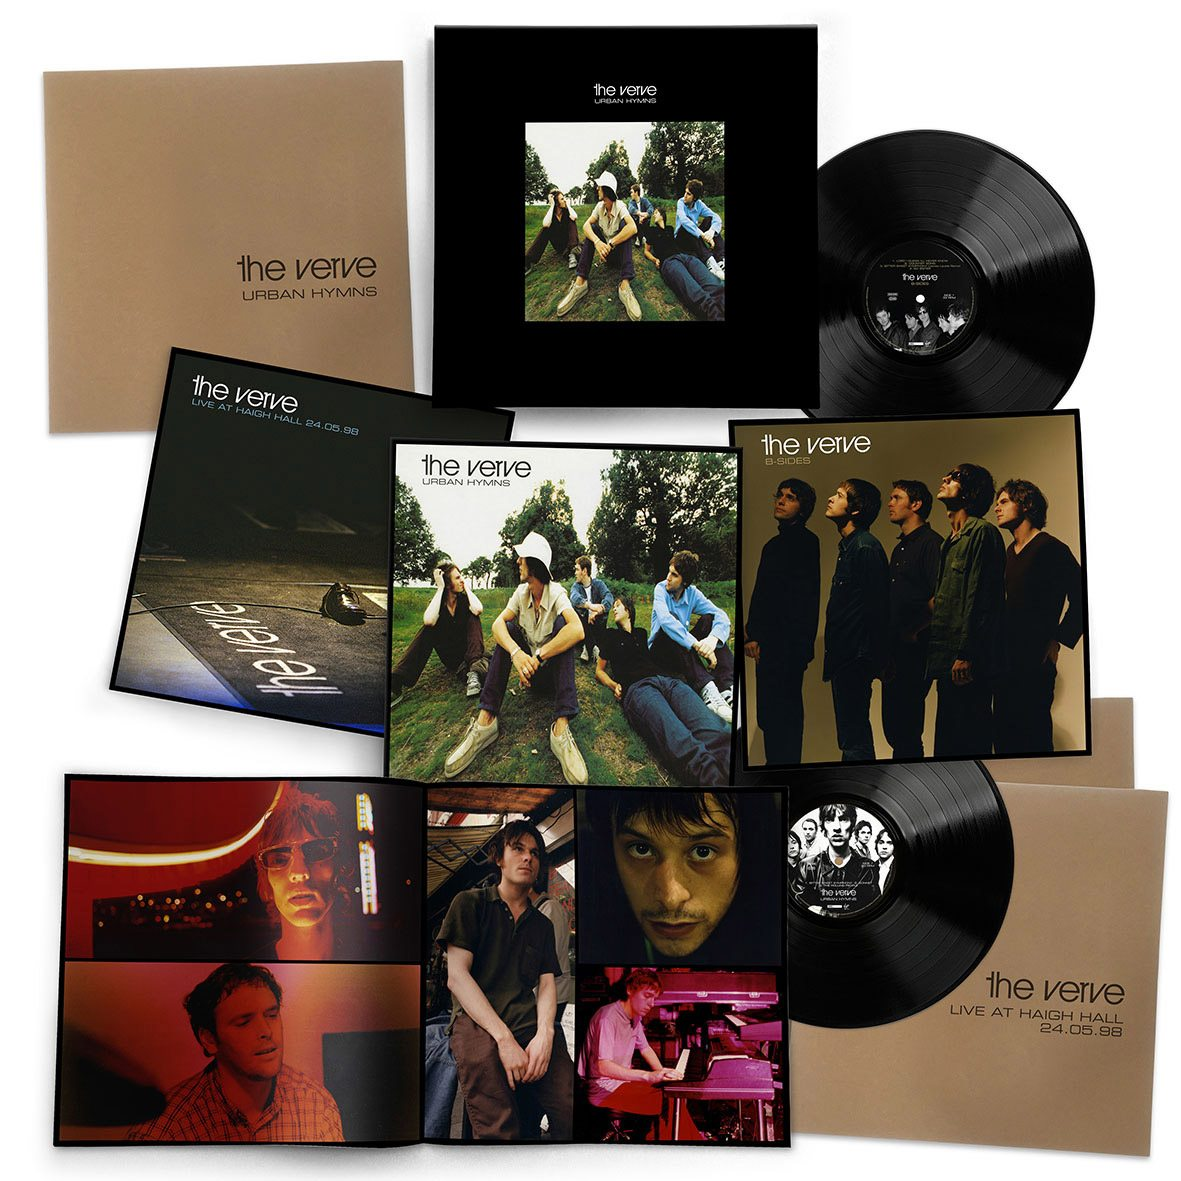 The Verve Urban Hymns Super Deluxe Cd And 6lp Vinyl